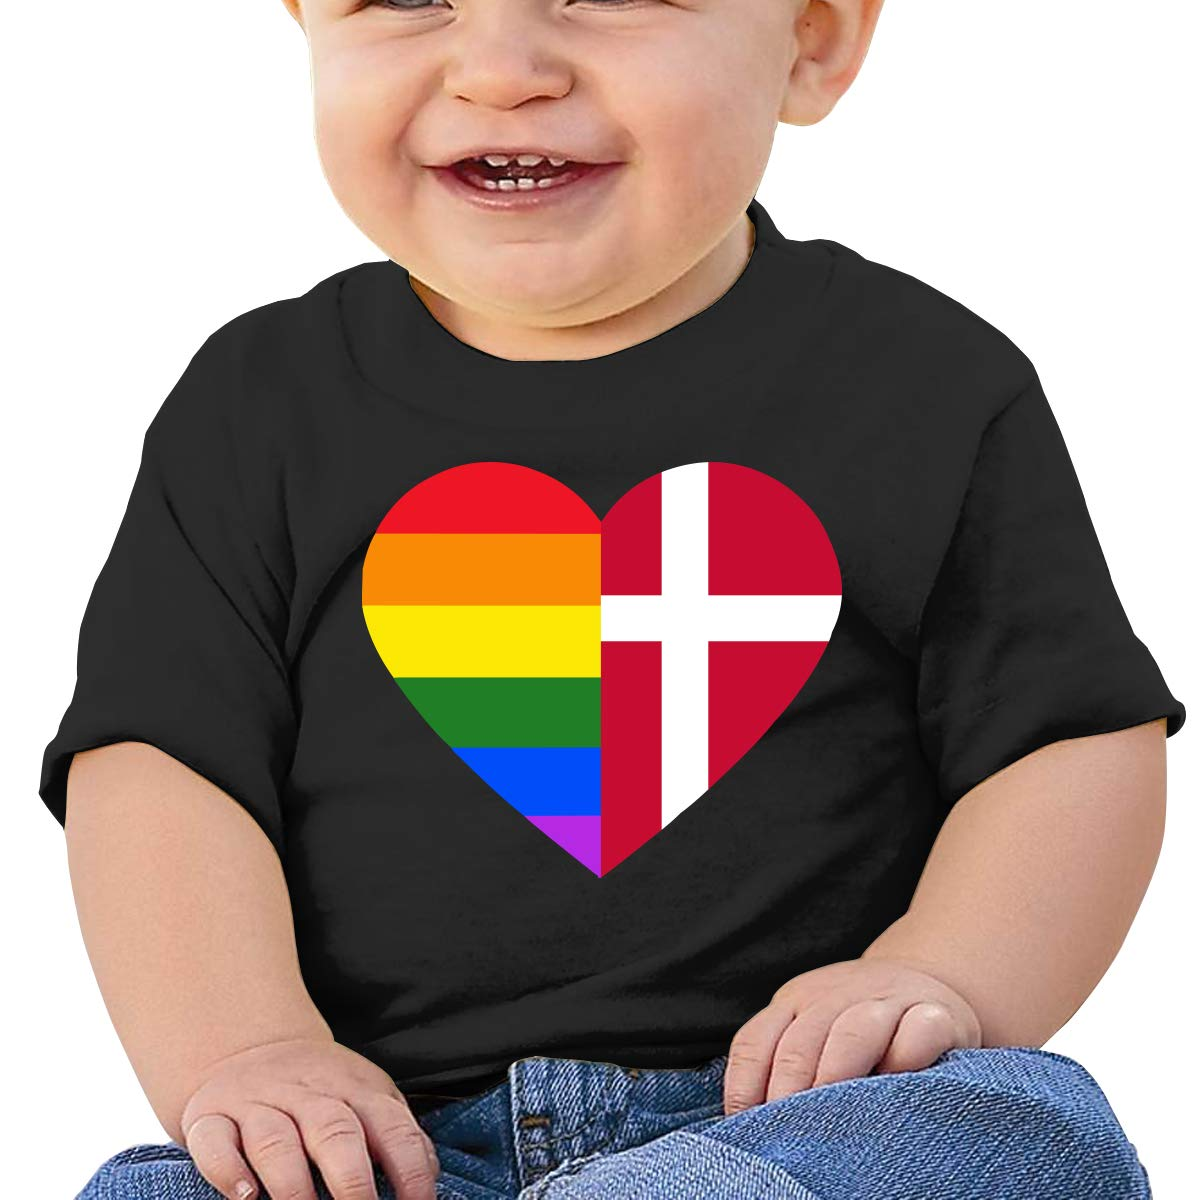 ZUGFGF-S3 Denmark Flag Toddler Baby Newborn Short Sleeve T Shirts 6-24 Month Cotton Tops